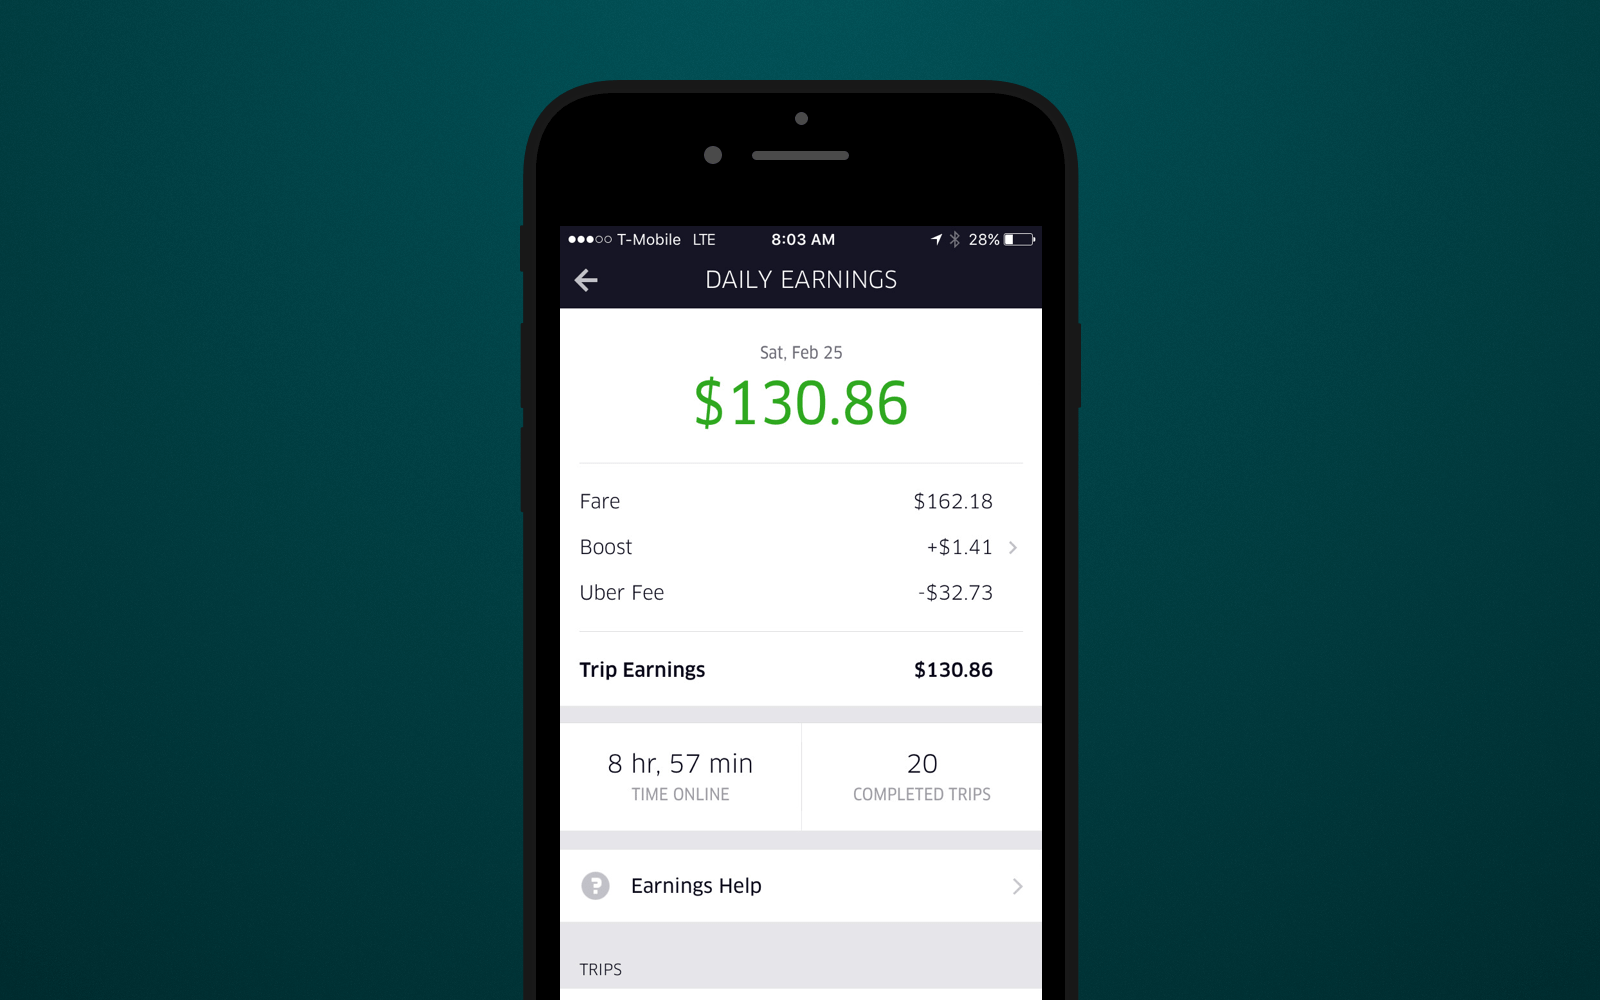 Couriers can see their earnings directly in UberEats app